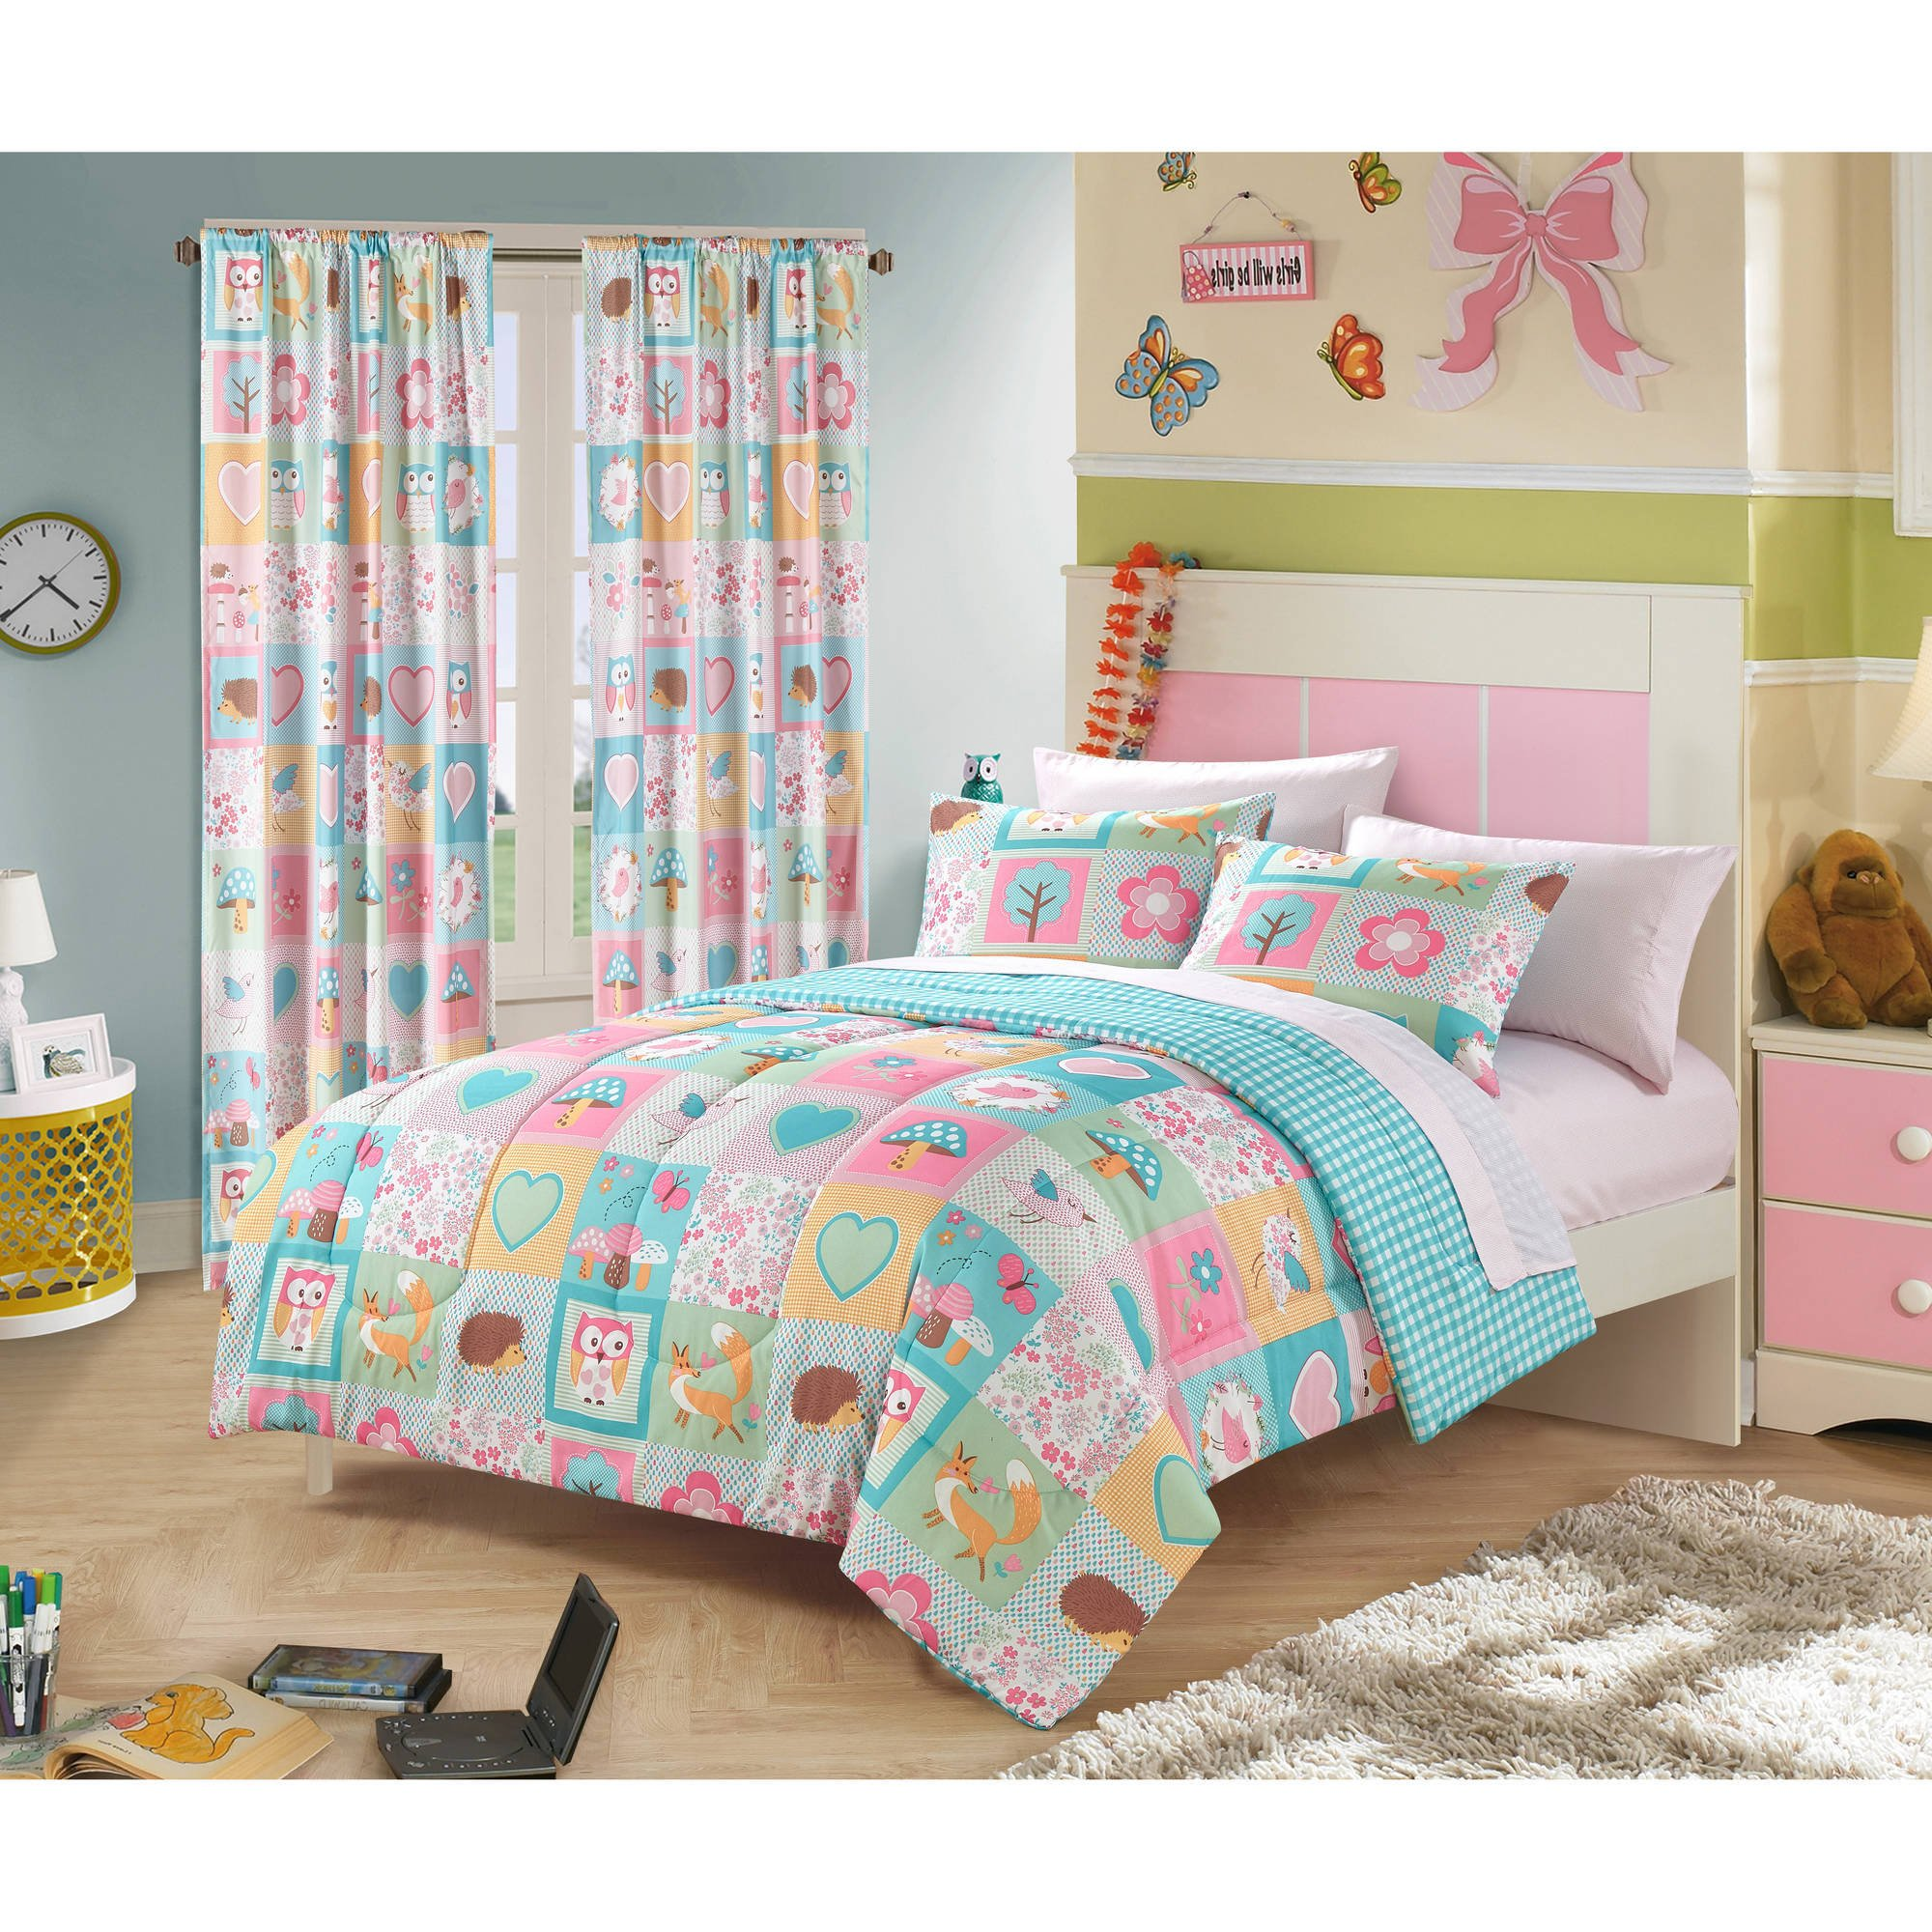 5 Piece Girls Pink Forest Friends Comforter Twin Set, Turquoise Fox Hedgehog Owls Forest Animal Tree Geometric Design, Kids Bedding For Bedroom Butterfly Floral Pattern, Cheerful Teen Themed Polyester